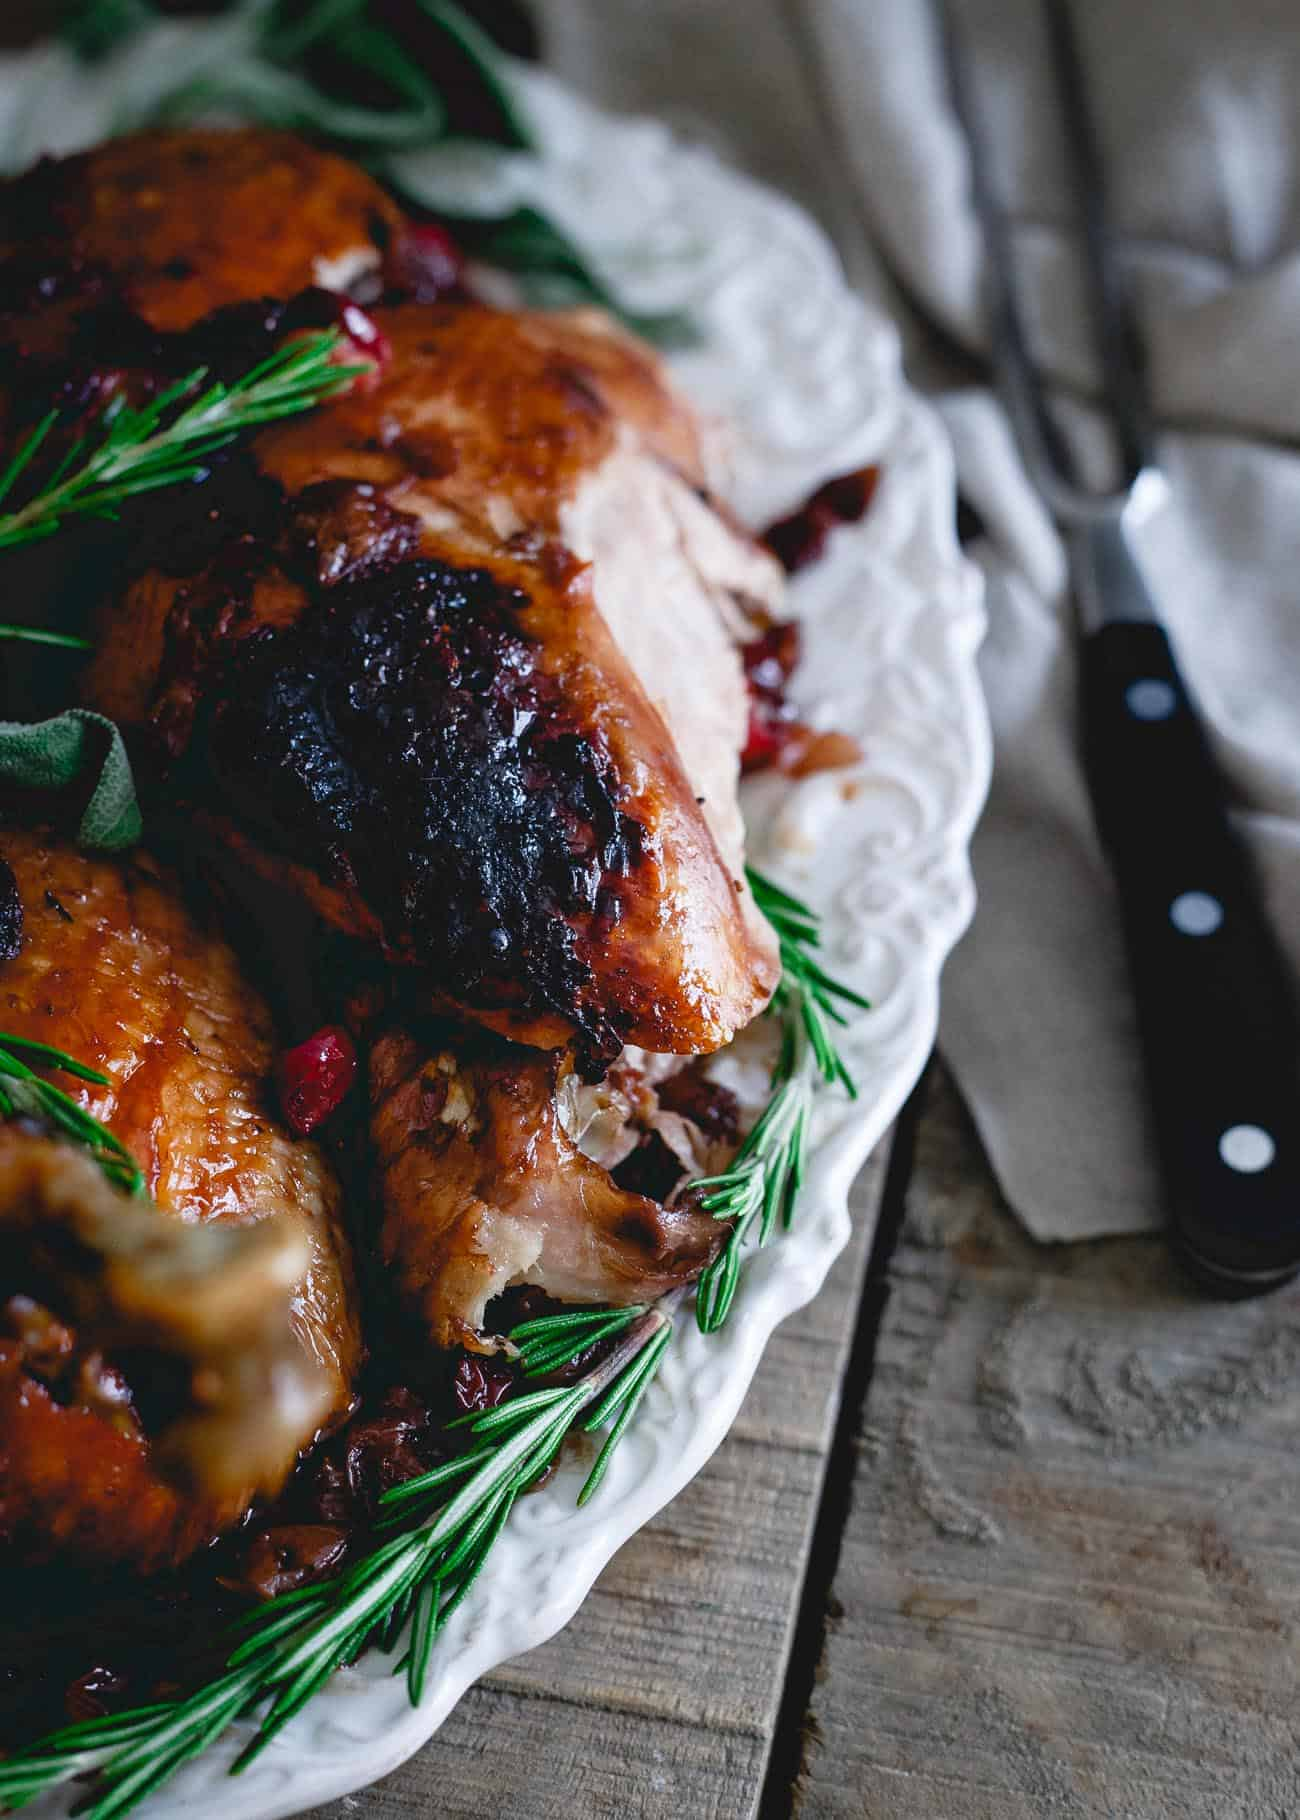 Basting this organic heirloom turkey in a cherry cranberry glaze makes for the most deliciously moist and flavorful turkey you'll have this holiday season!